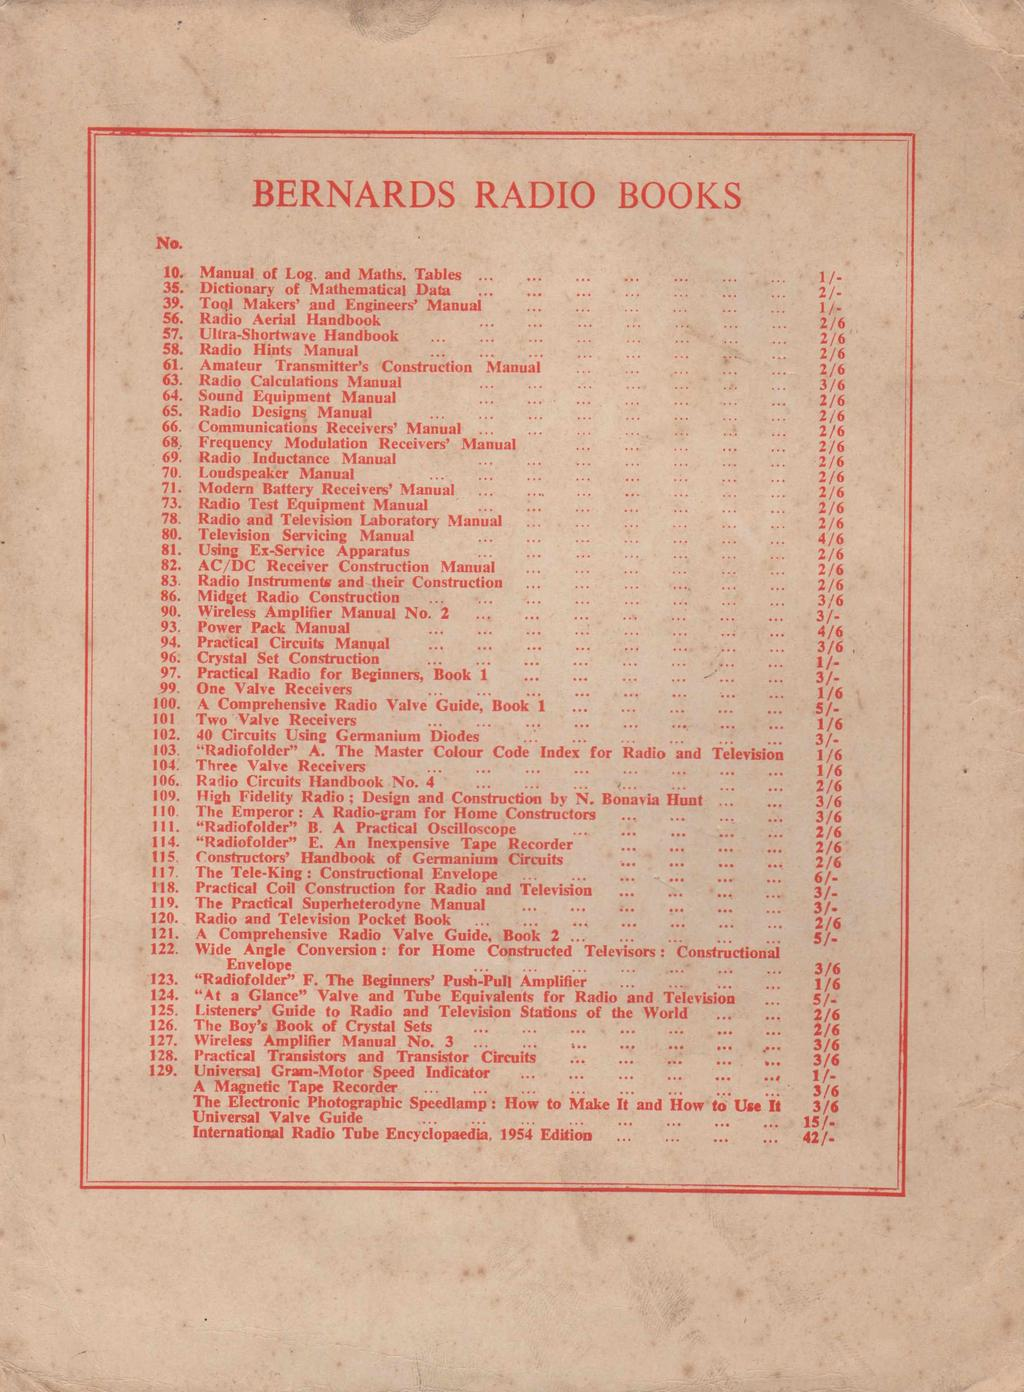 BERNARDS RADIO BOOKS No. 10. Manual of Log. and Maths. Tables............... 1 /. 35. Dictionary of Mathematical Data.................. 2/- 39. Tool Makers and Engineers Manual............ 1 /. 56.